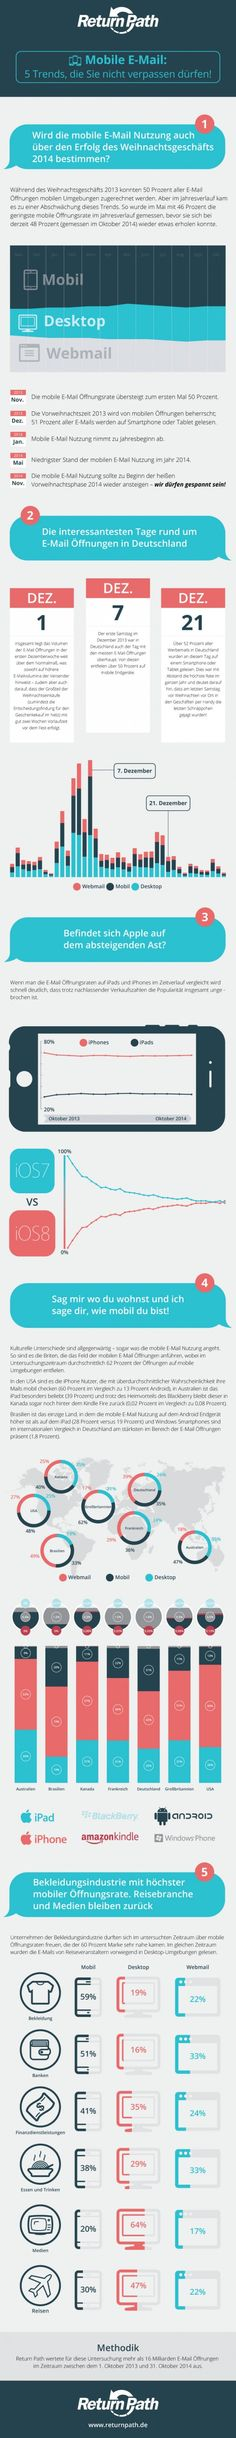 5 Email-Trend, die man beim Mobile Marketing beachten muss as at 12/2014  Mobile E-Mail Trends by Return Path